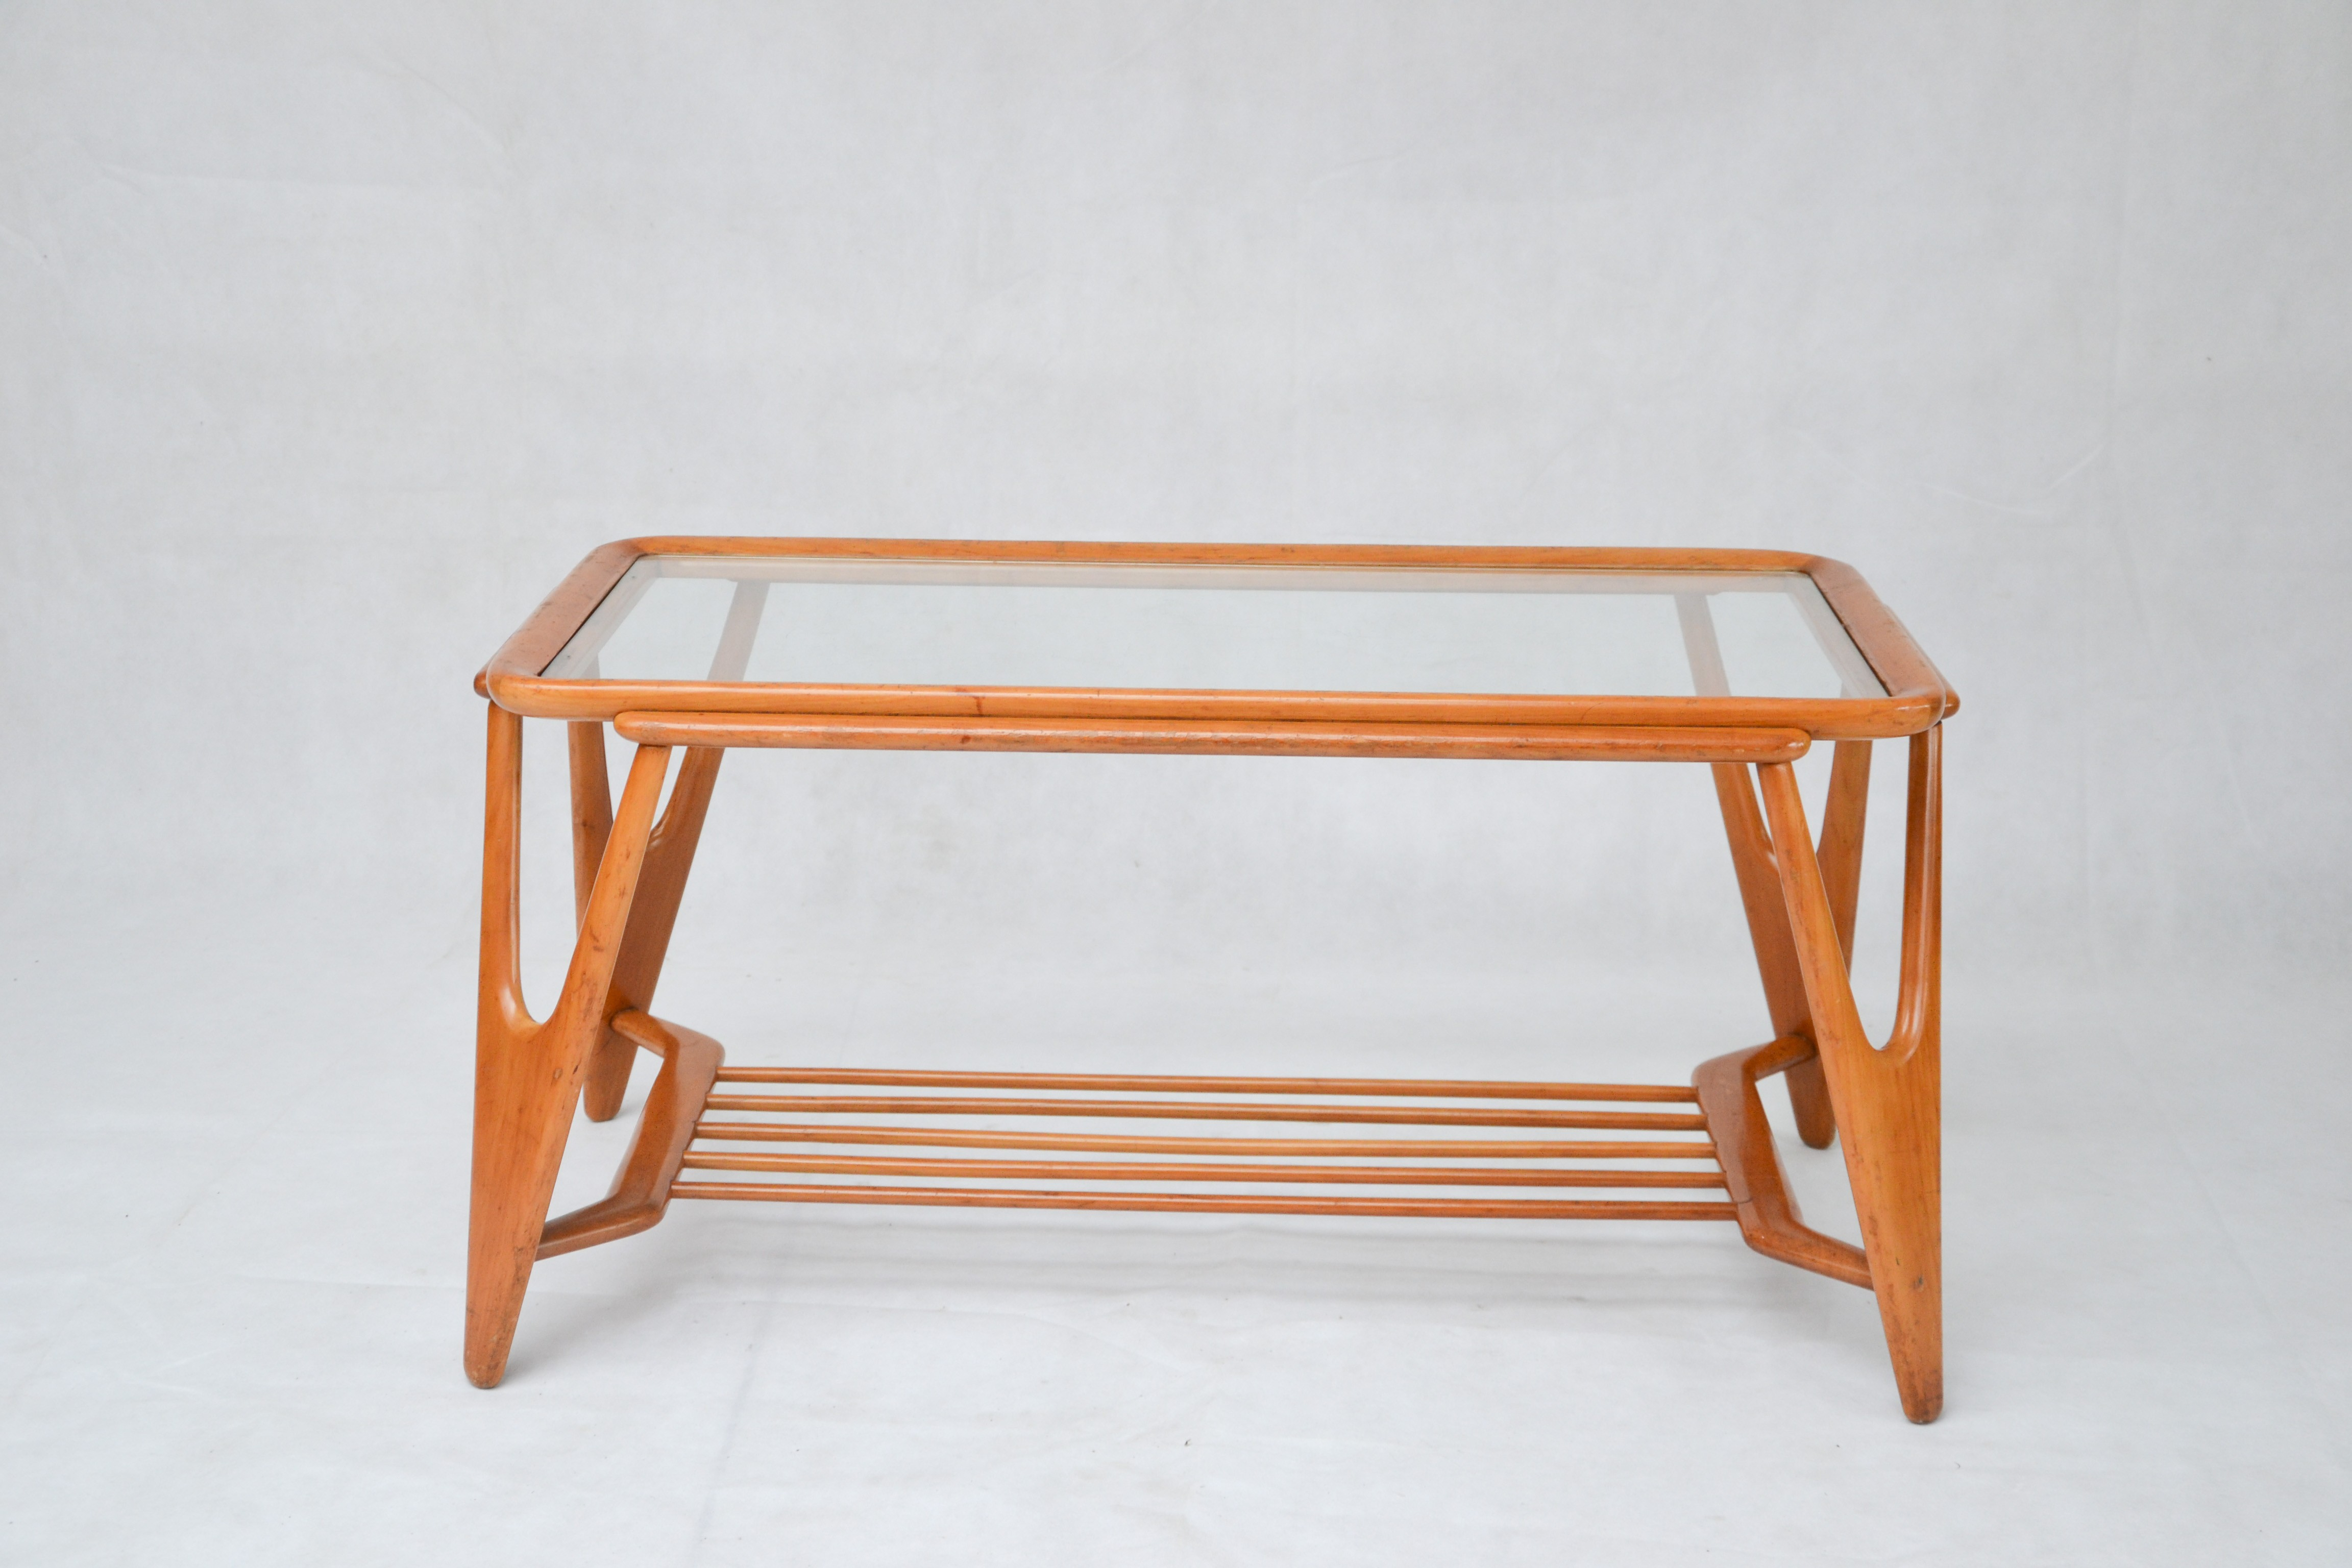 Vintage coffee table by cesare lacca for cassina 1950s design previous next geotapseo Image collections